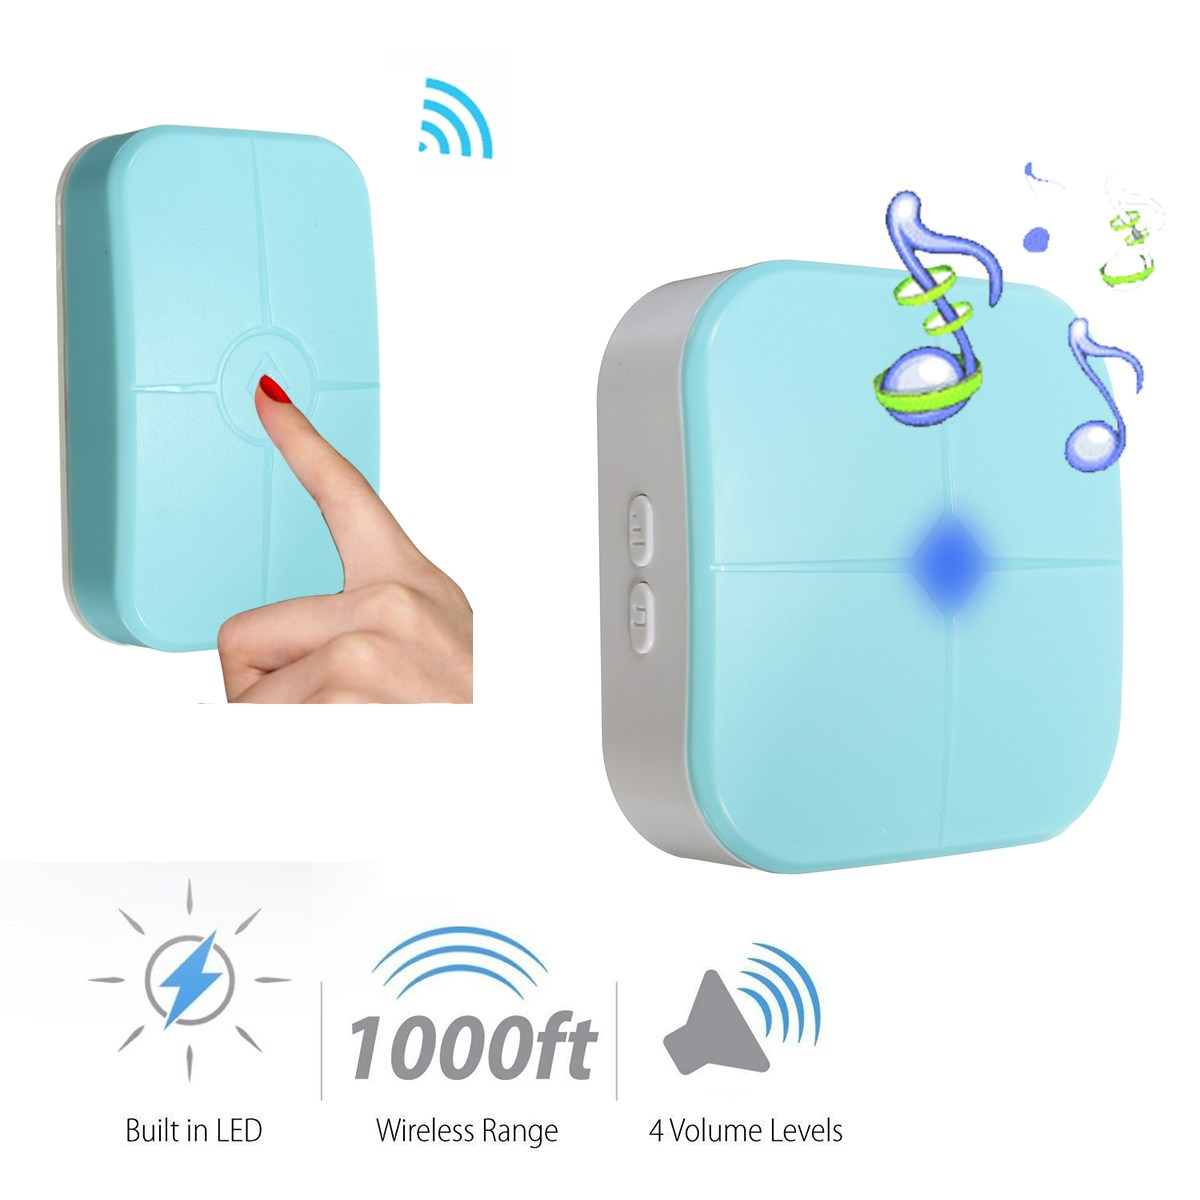 Safurance 300M LED Wireless Waterproof Door Bell Remote Control+Receiver 36 Tunes US Plug Home Security wireless home security door bell call button access control with 1pcs transmitter launcher 1pcs receiver waterproof f3310b